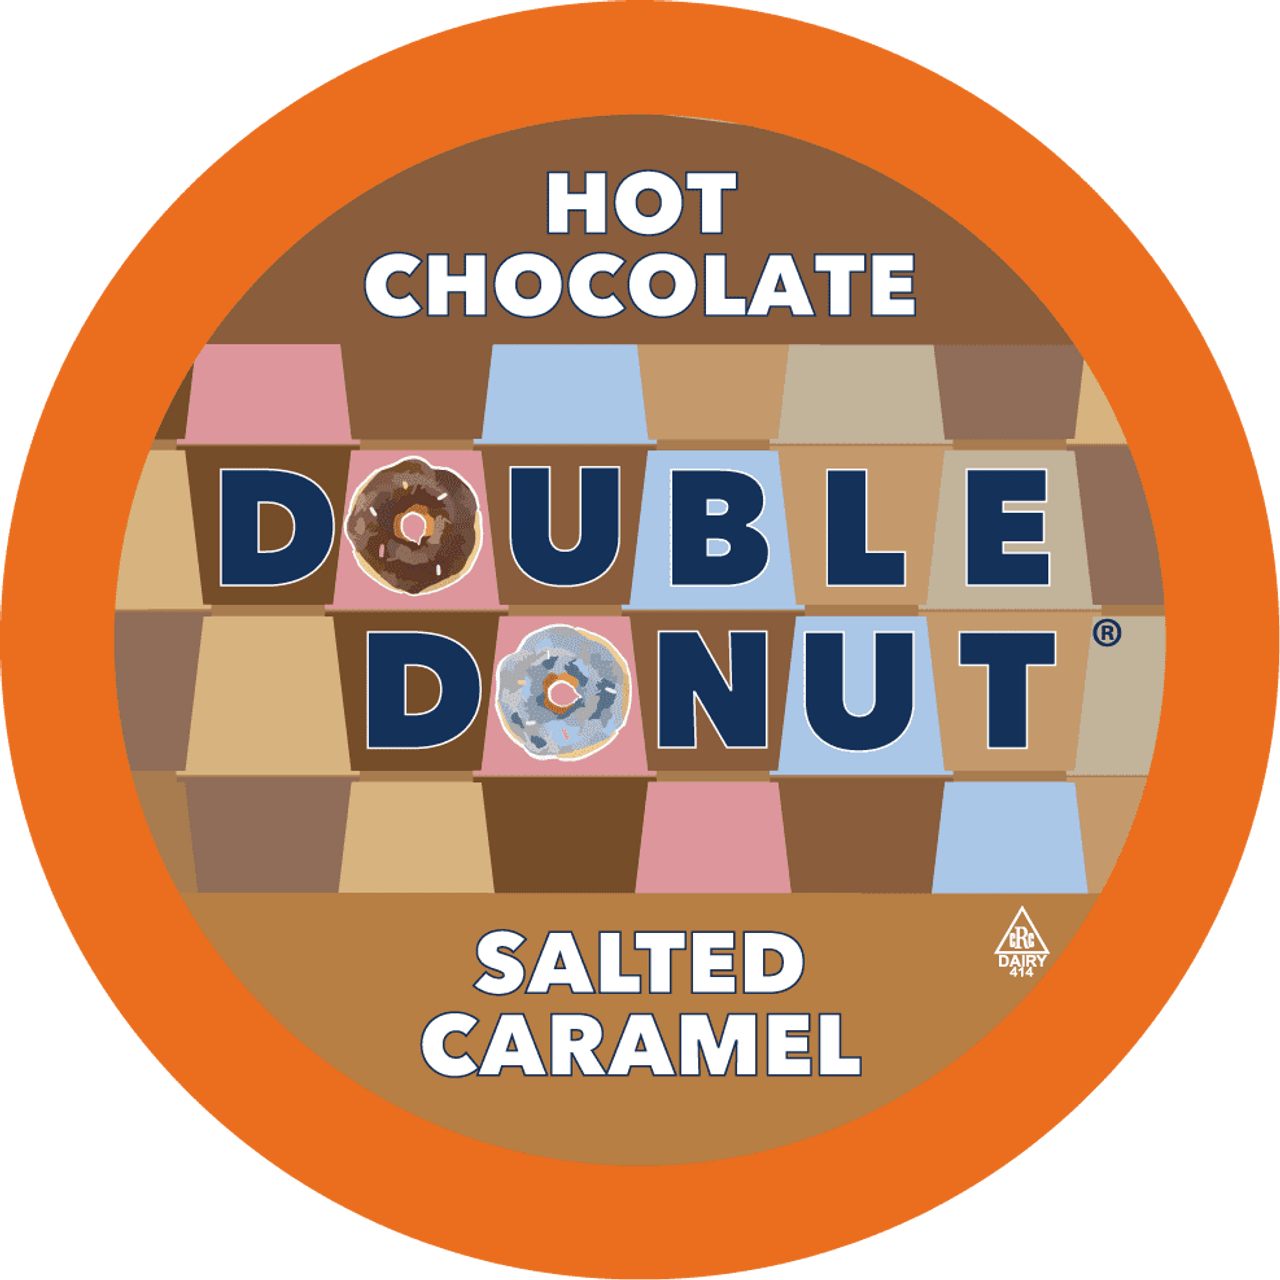 Salted Caramel Hot Chocolate by Double Donut